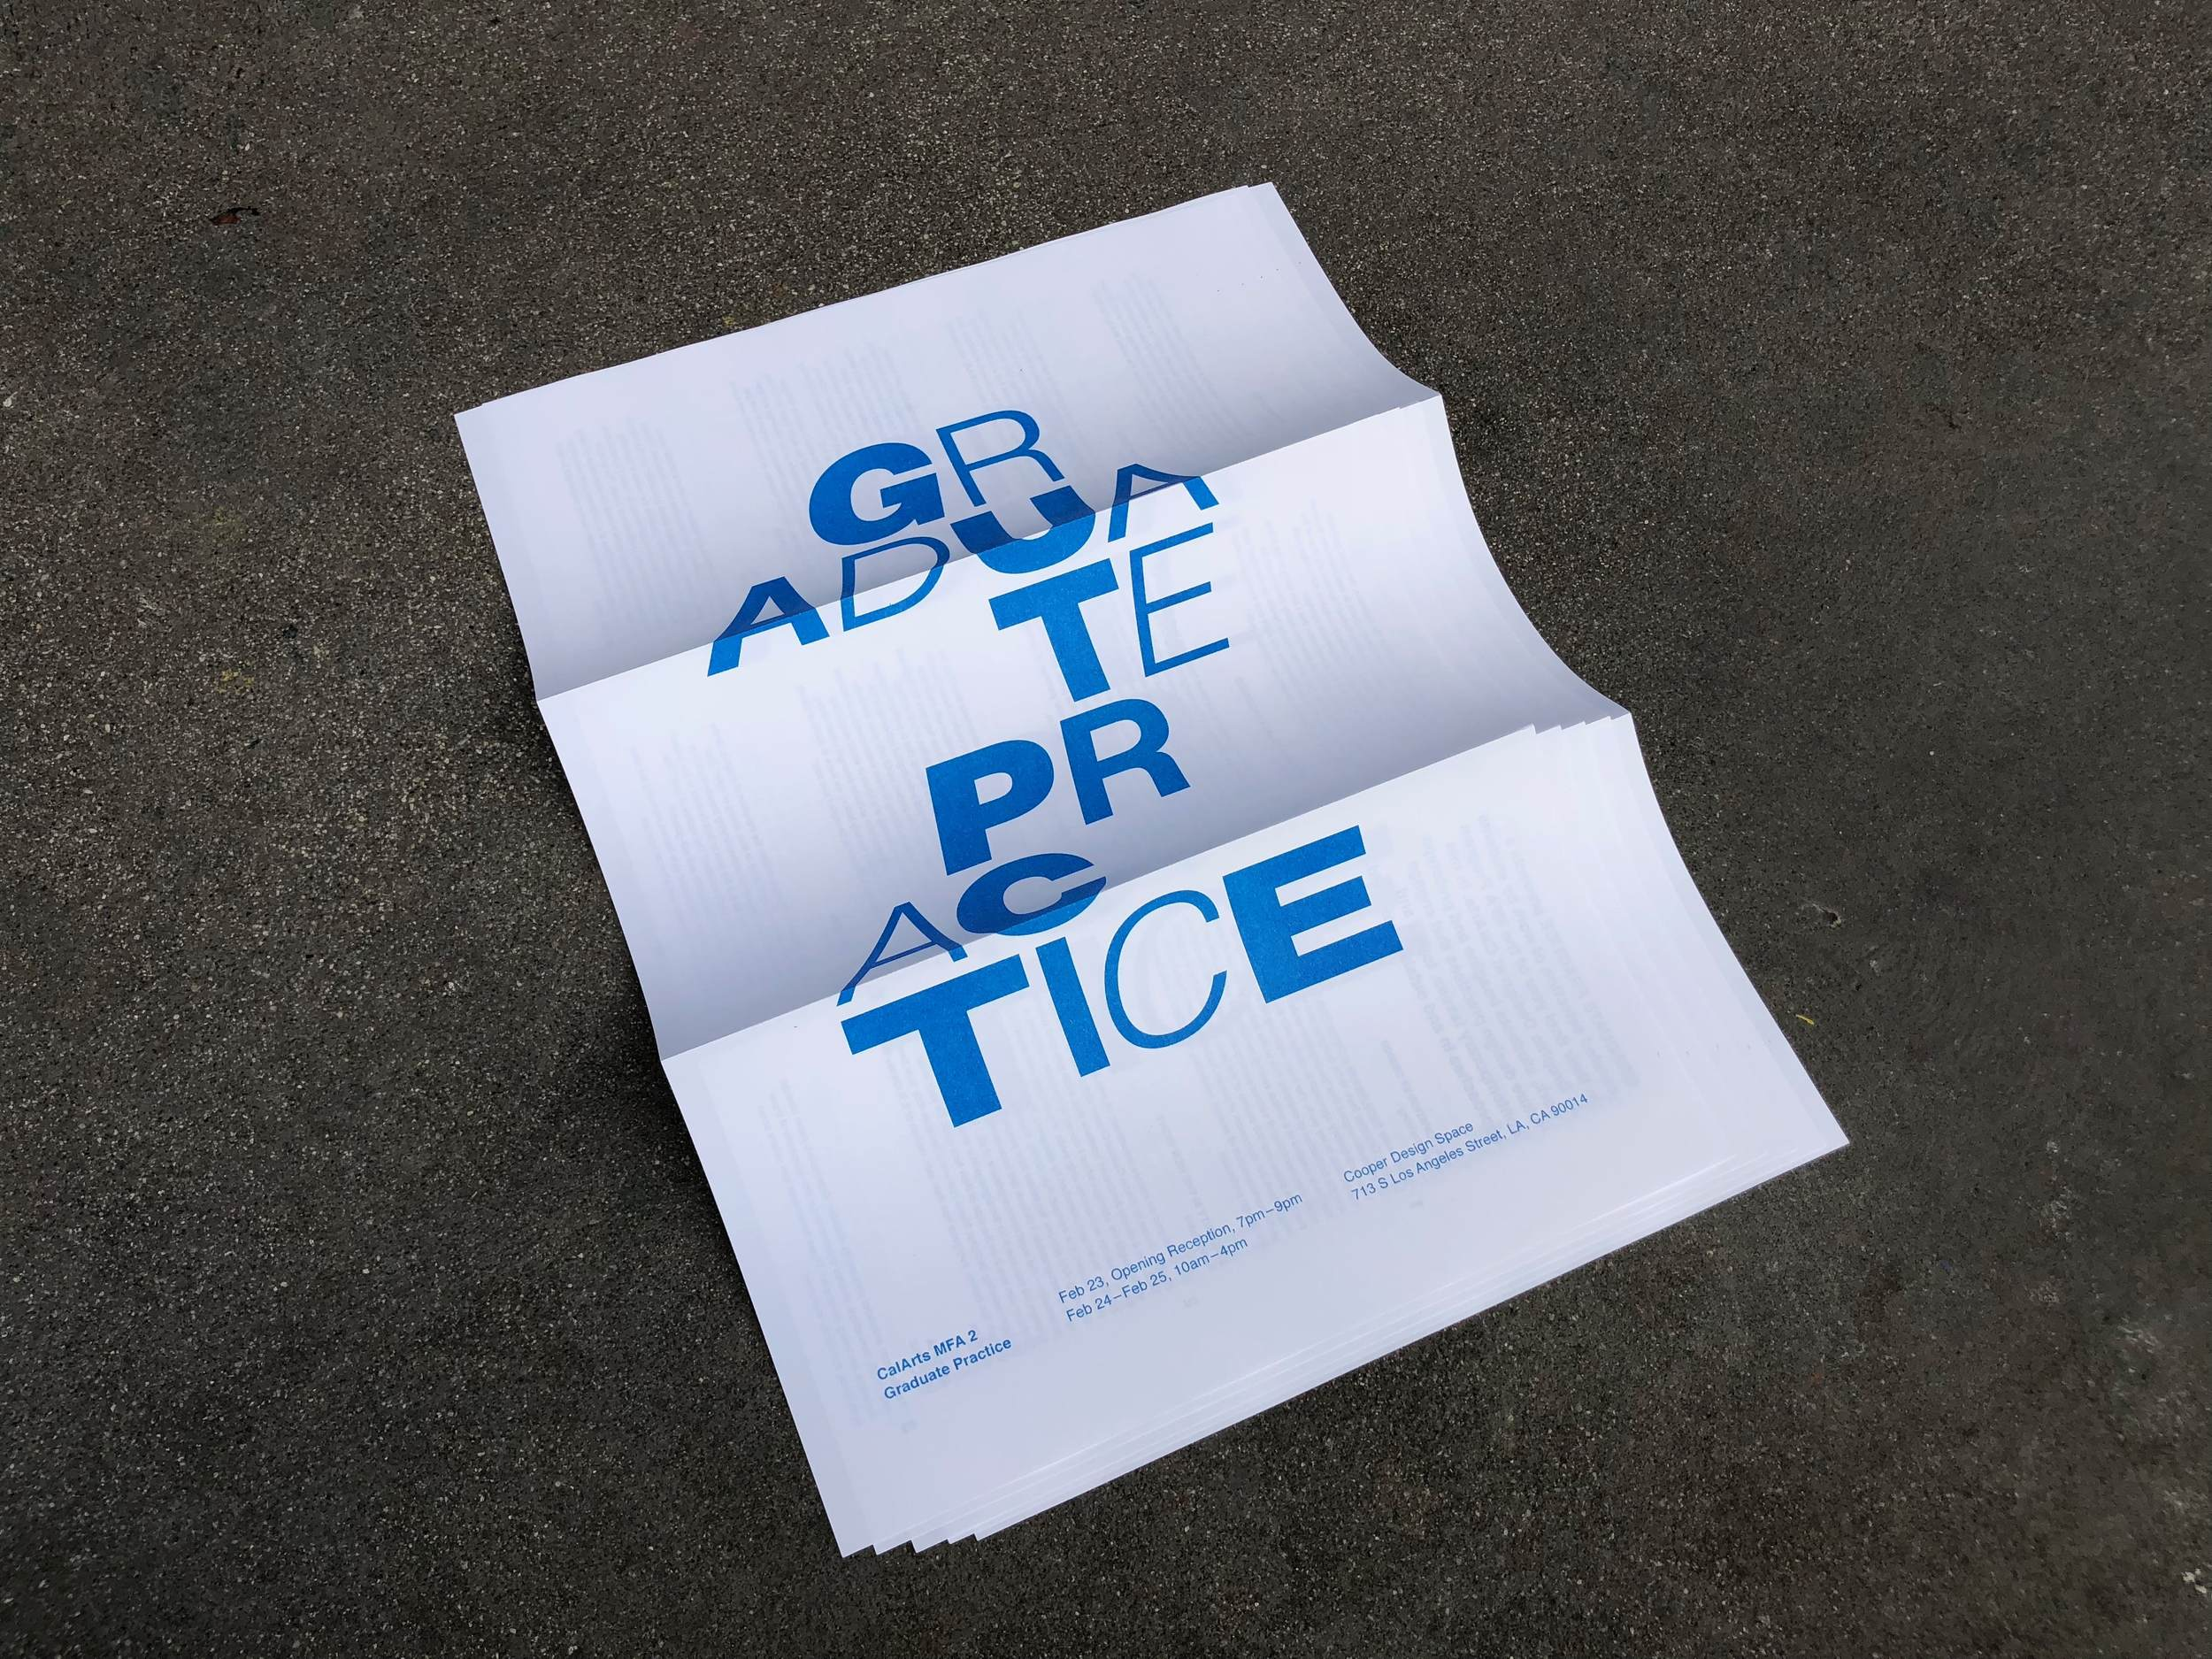 Graduate Practice . Exhibition identity designed in collaboration with Junki Hong, Anther Kiley, and Kathy Bates.